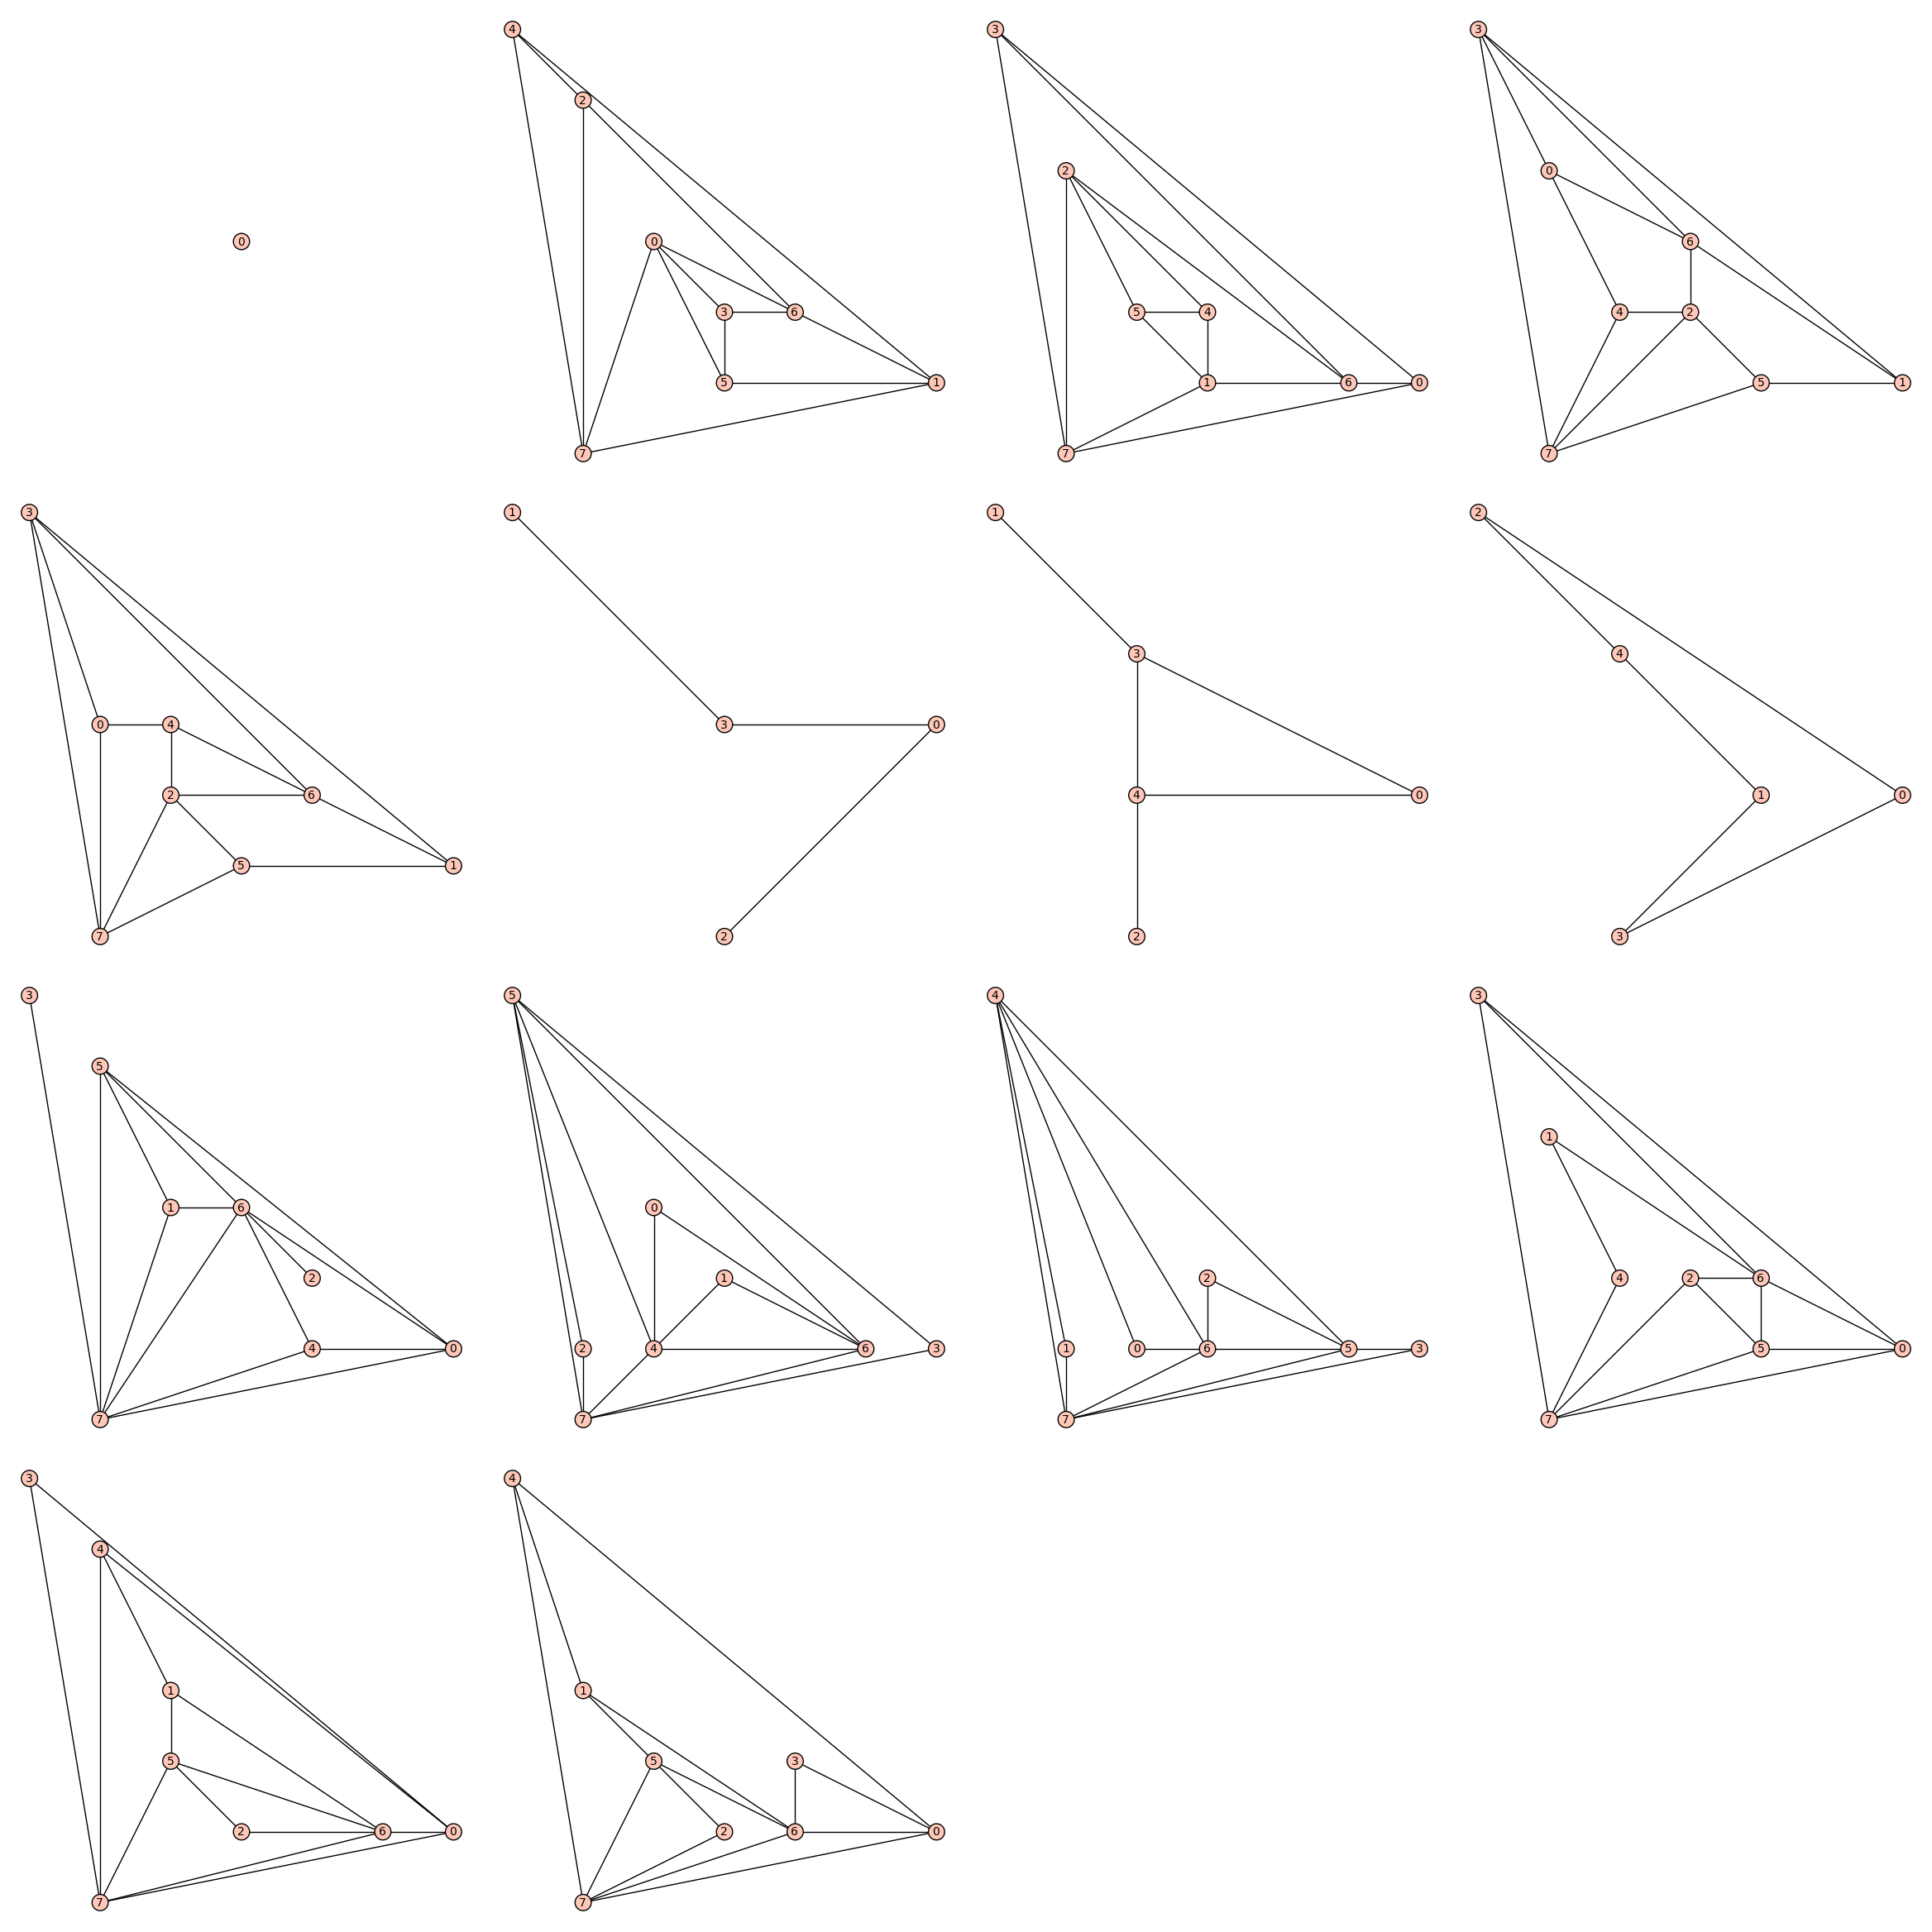 Isomorphic Planar Graph With Its Complement